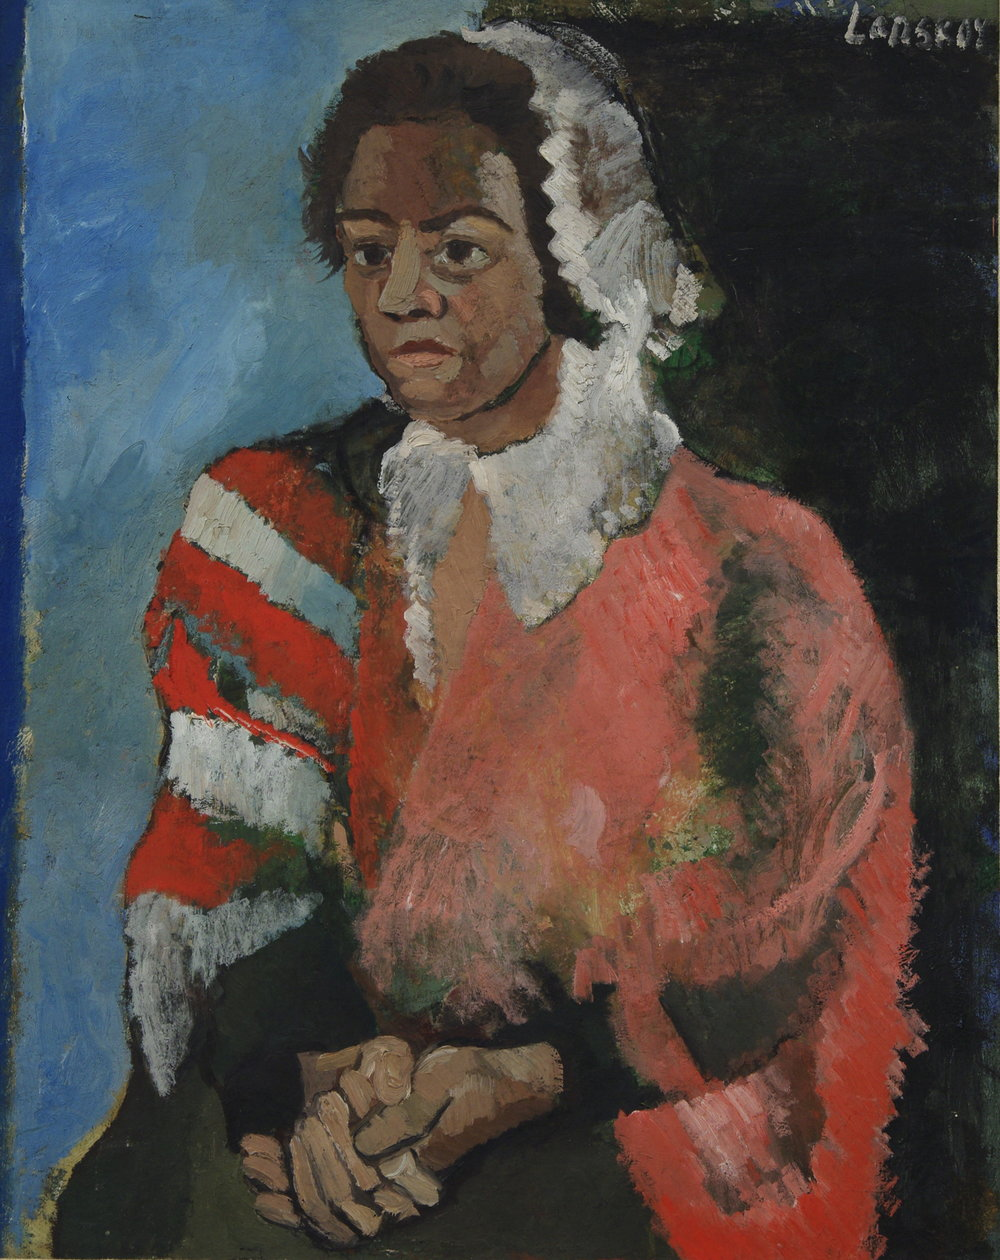 Portrait of a Peasant.   Oil on canvas, size: 92 x 75 cm., signed, circa 1925-28